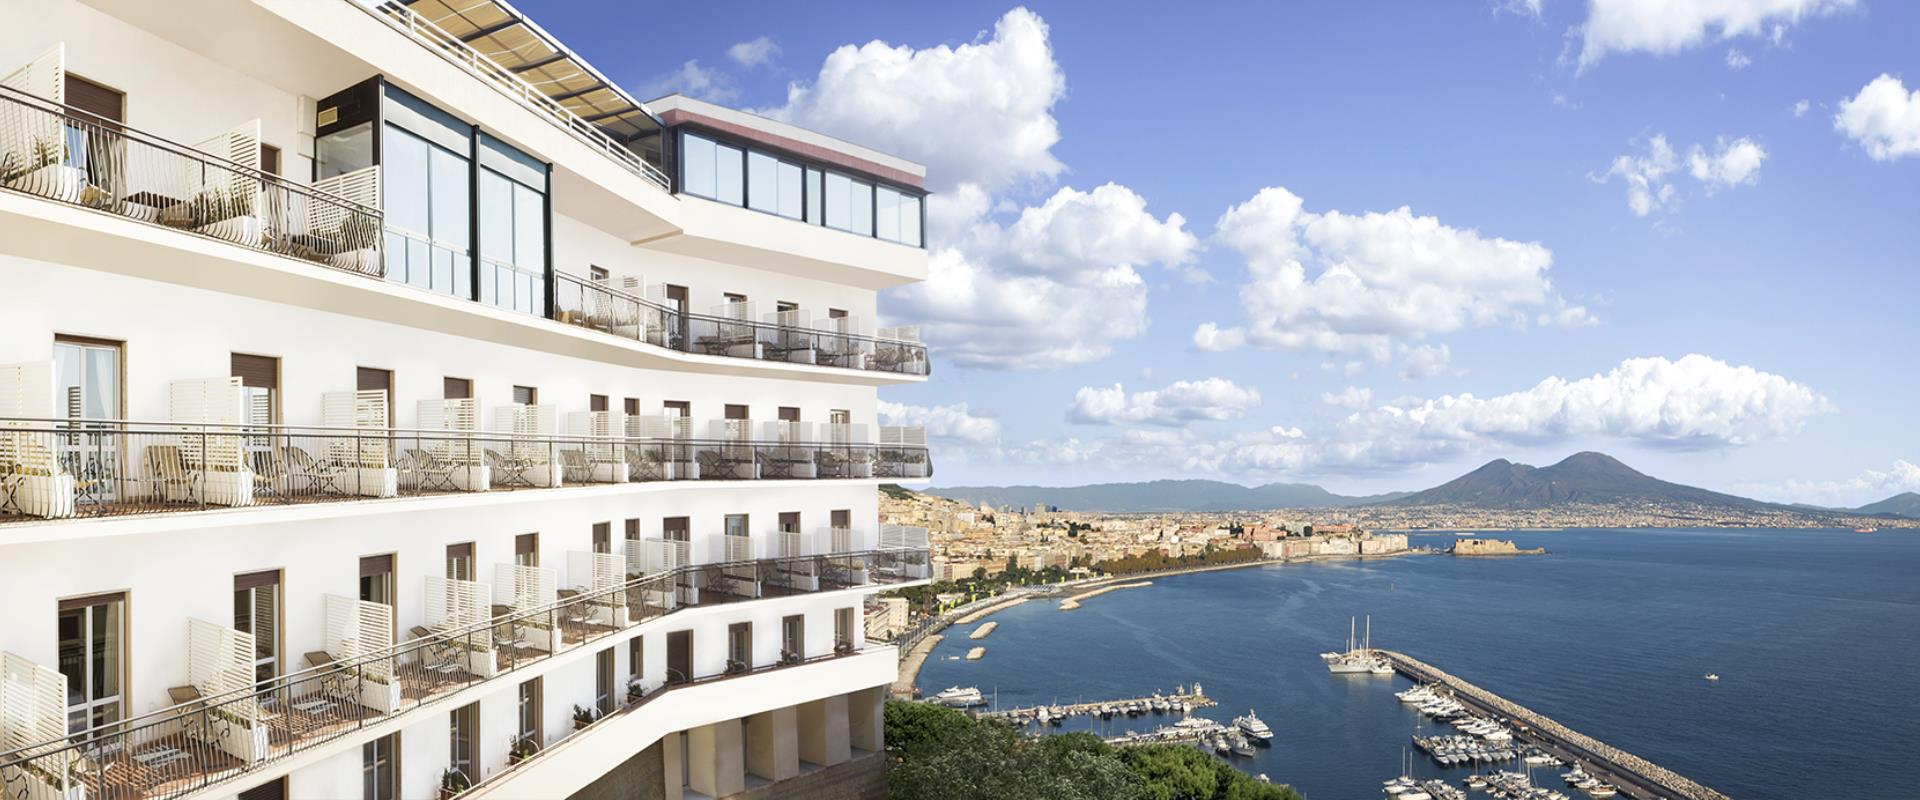 BW Signature Collection Hotel Paradiso Naples-hotel 4 Stars in Posillipo with incredible views of the Bay of Naples